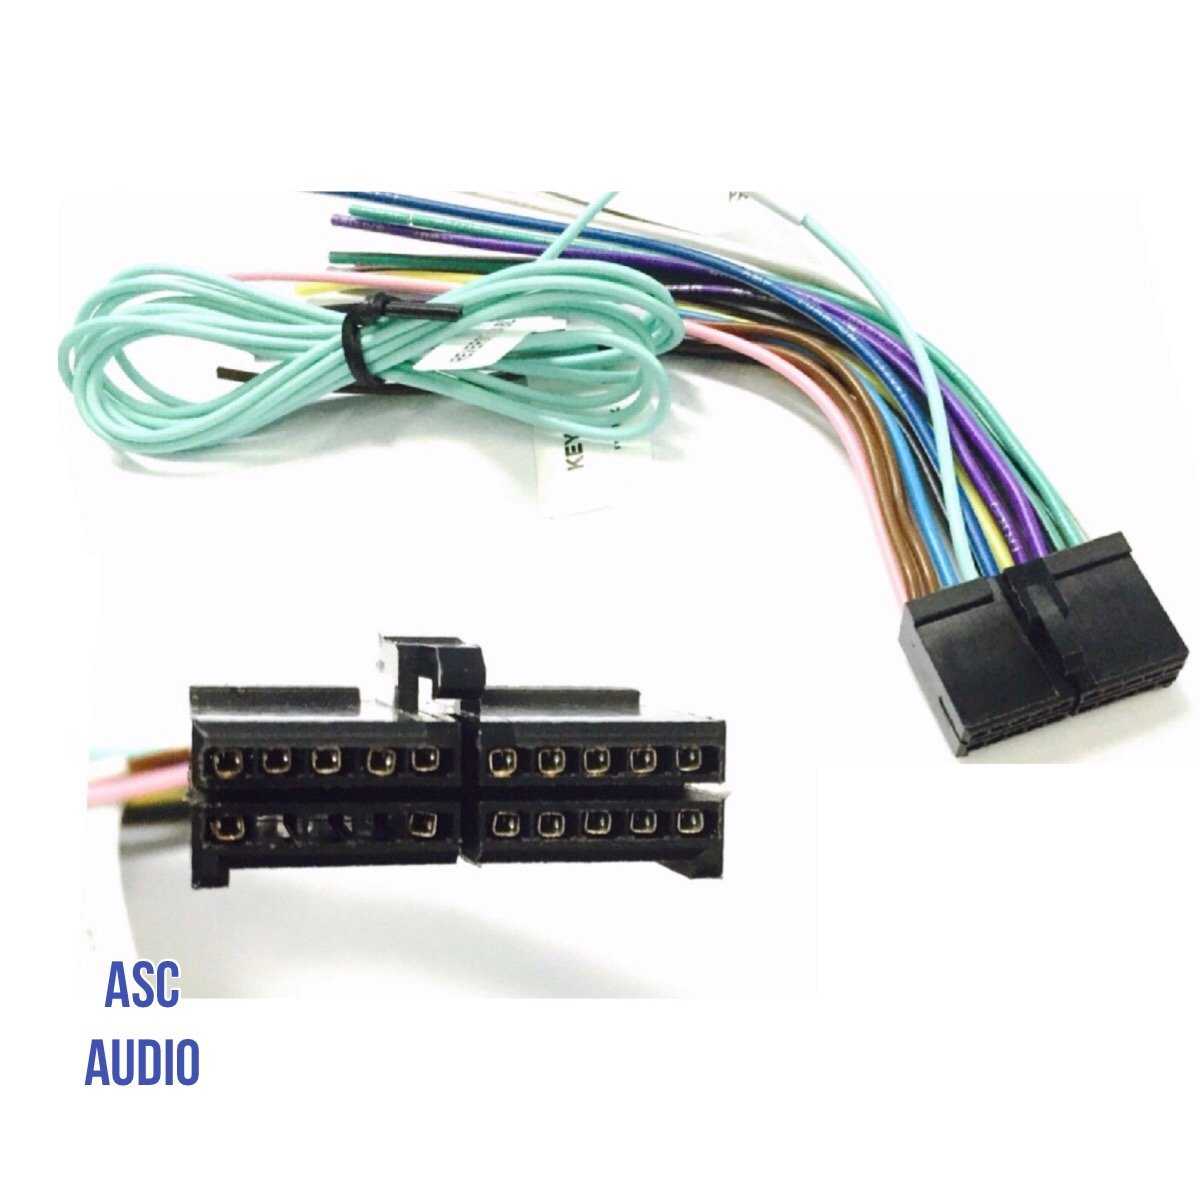 Dual Car Audio 16 Pin Stereo Wire Harness Radio Plug Xd5250 Wiring Diagram Asc For Select Boss 20 Radios Dvd Nav